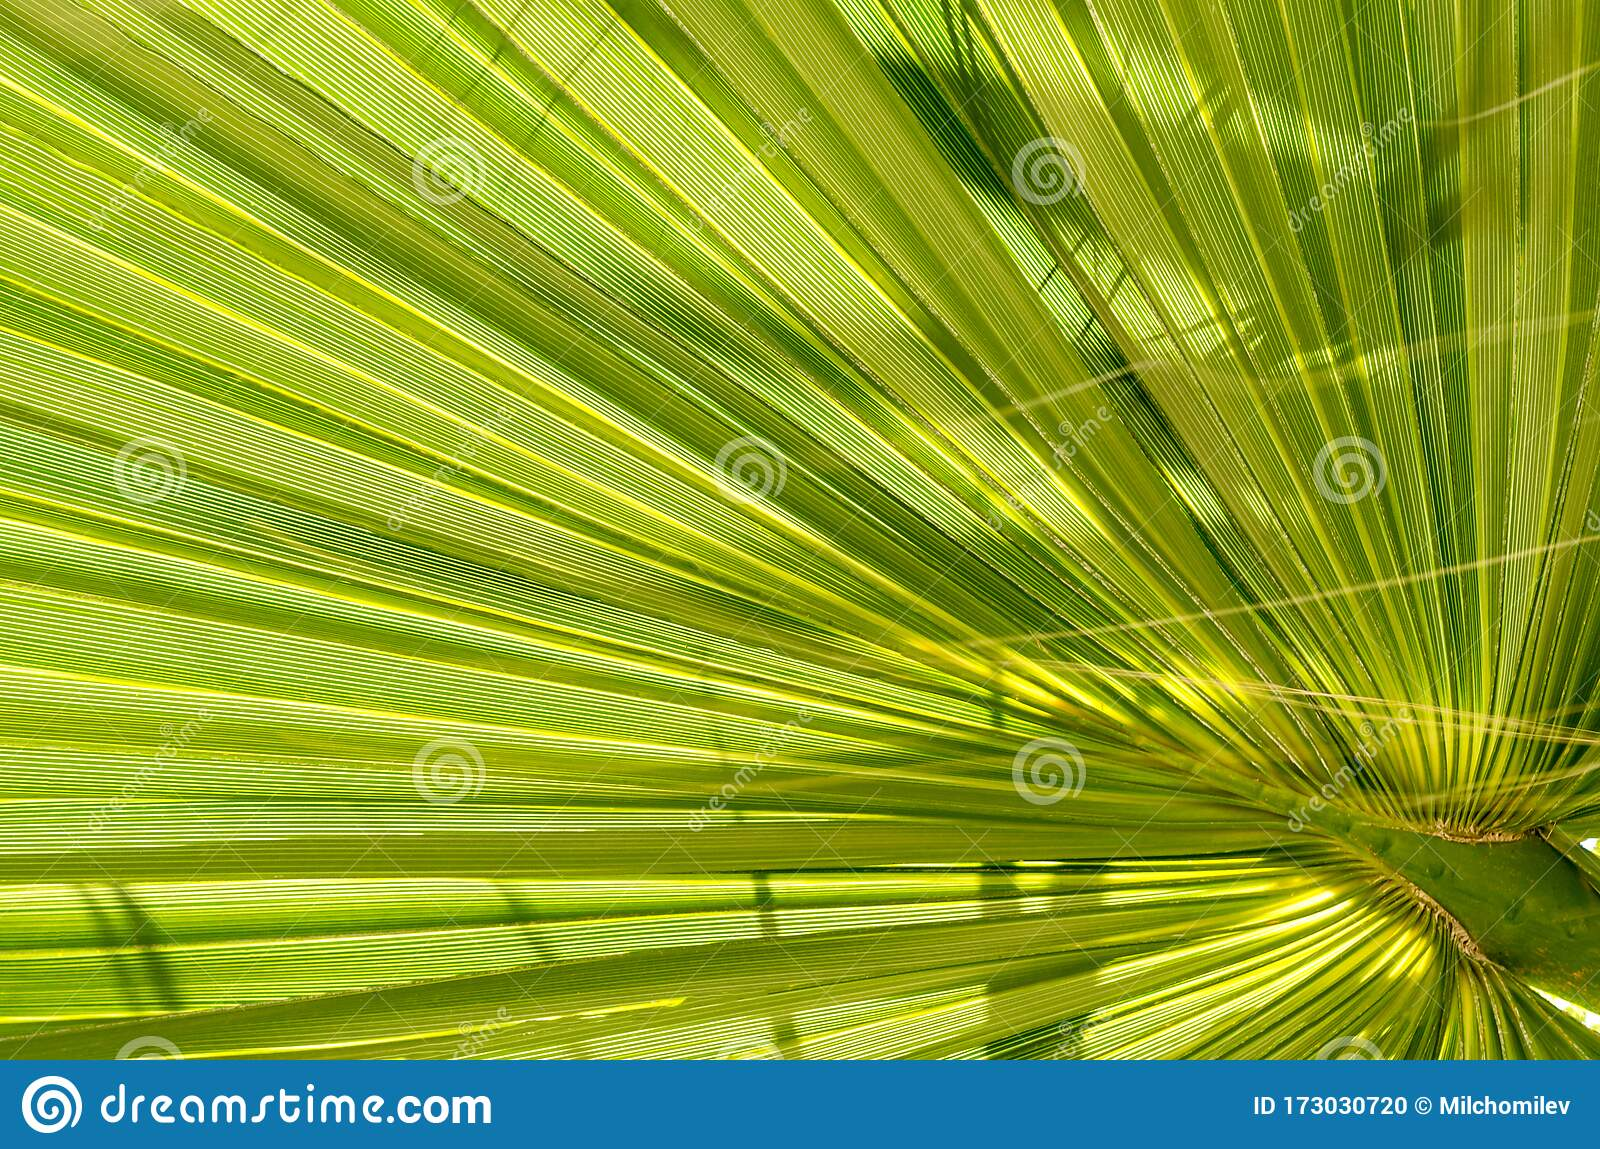 Leaf Of Young Palm Tree Closeup Of A Green Palm Leaf Viewed From Below Stock Photo Image Of Plant Closeup 173030720